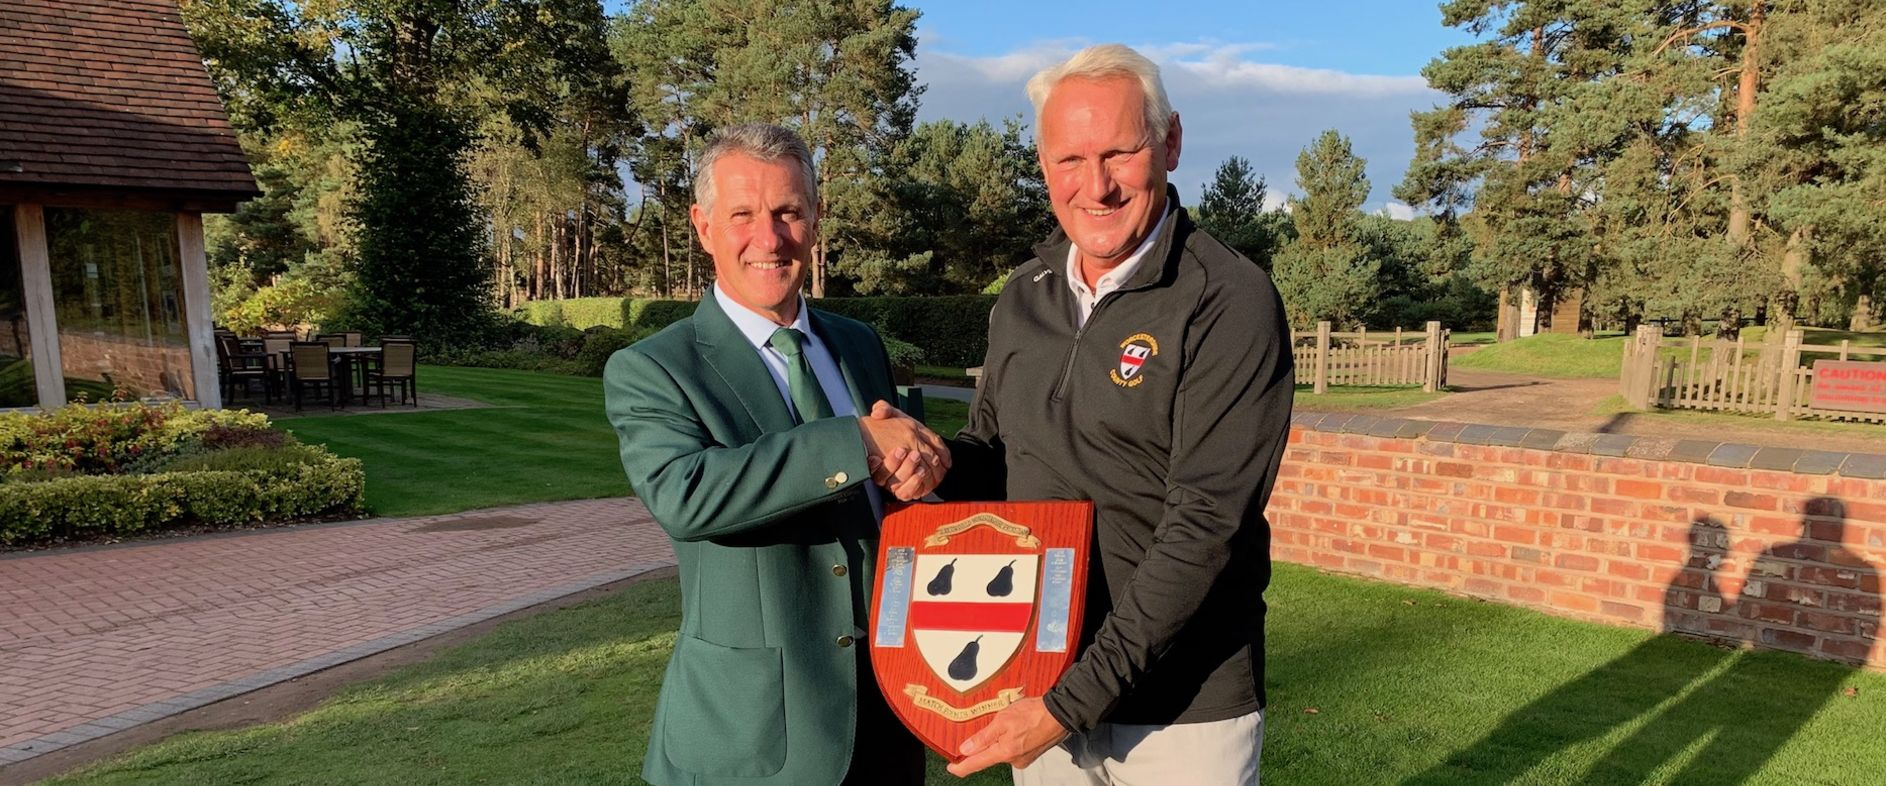 Congratulations to Tony Sanders (Worcs G&CC) for winning the 2019 Bolton Shield